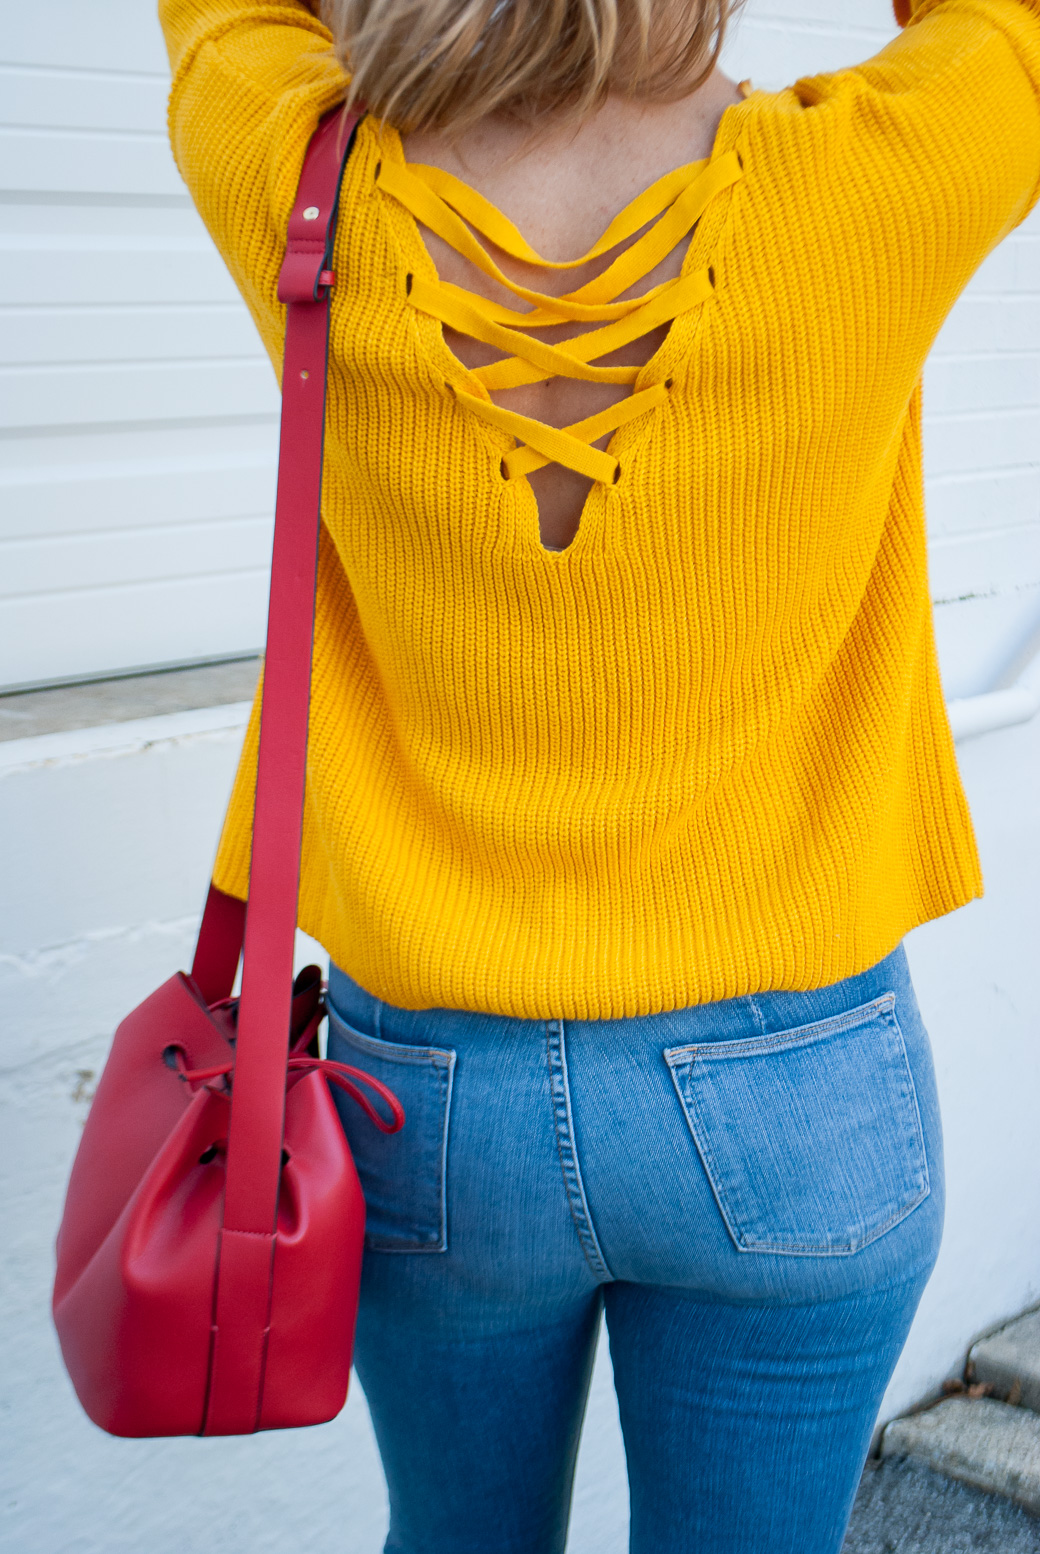 jeans and a sweater and purse